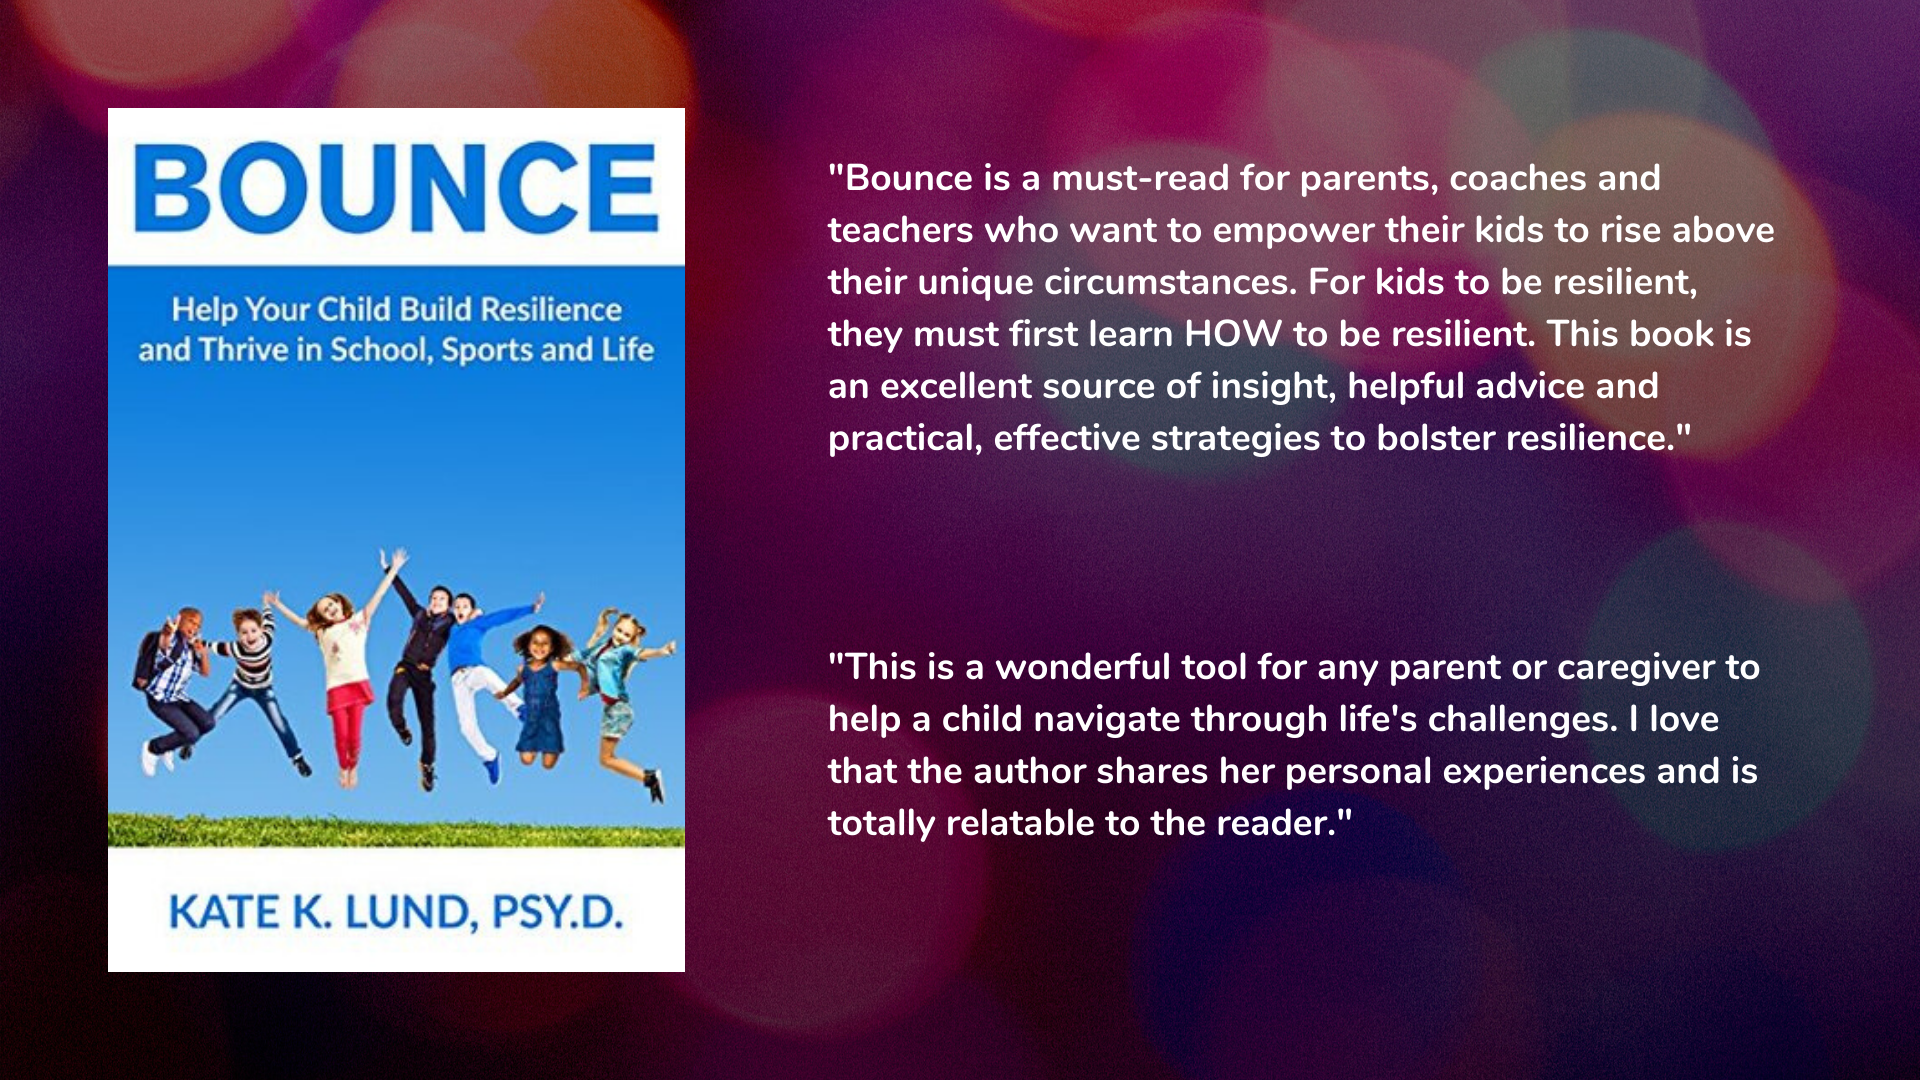 Bounce: Help Your Child Build Resilience and Thrive In School, Sports and Life